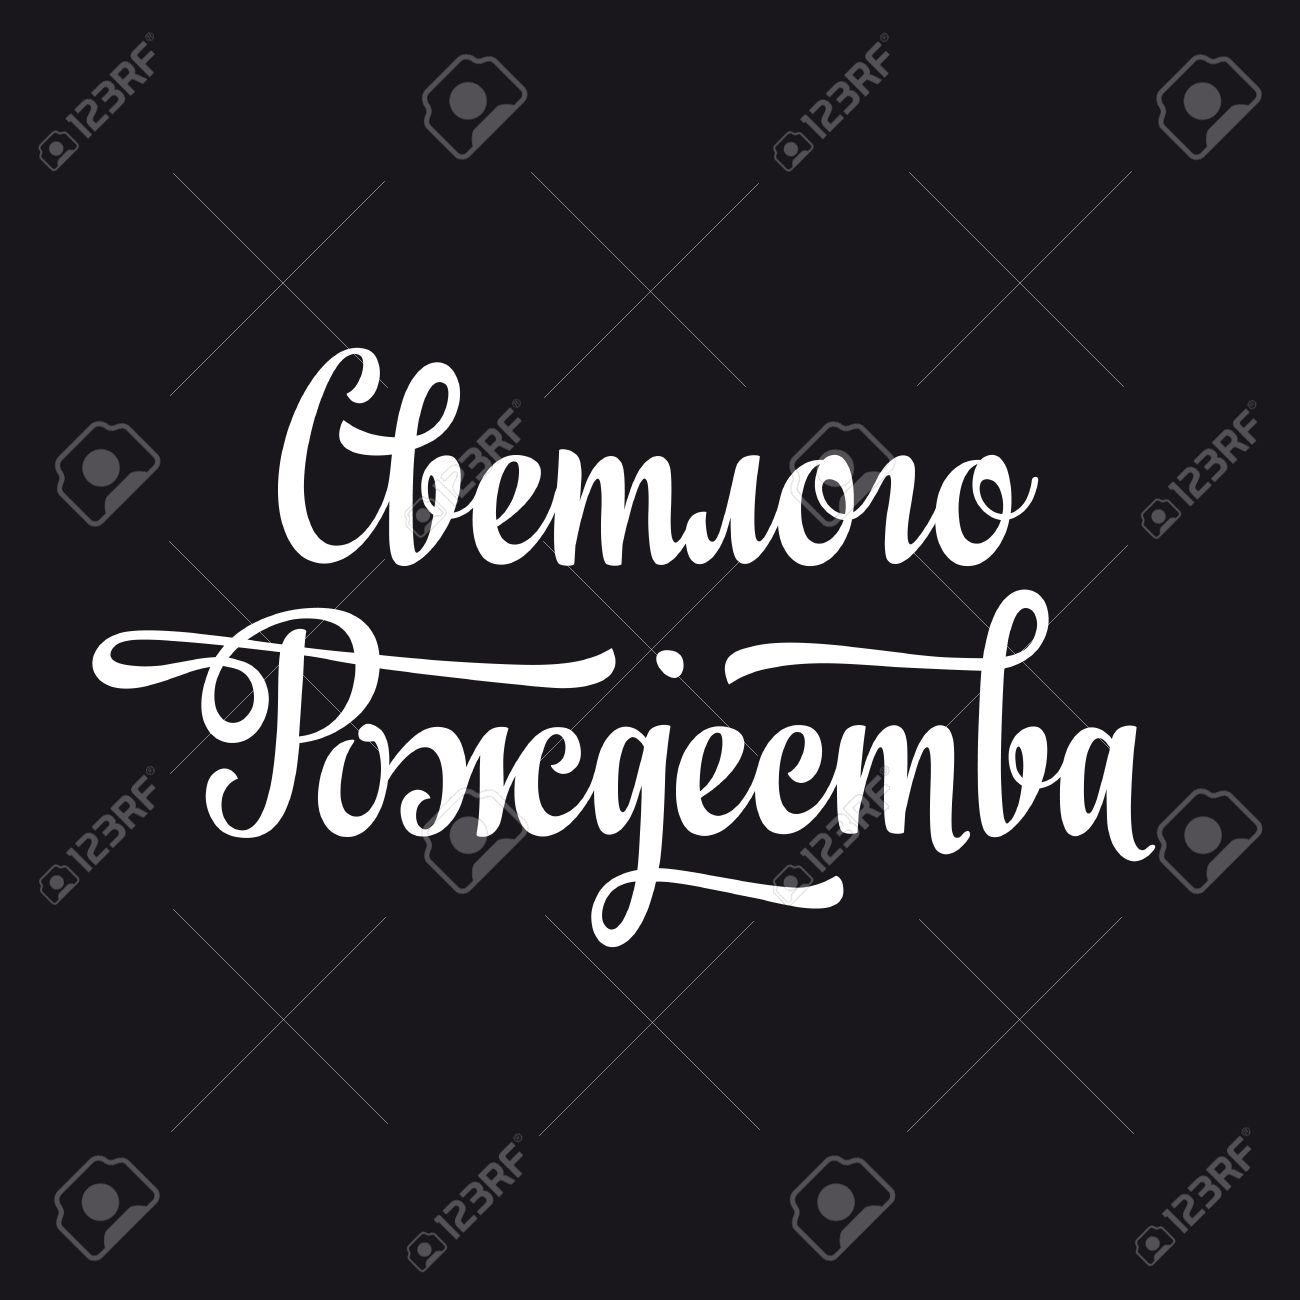 Merry Christmas In Russian.Orthodox Christmas Cyrillic Russian Font Russian Text An